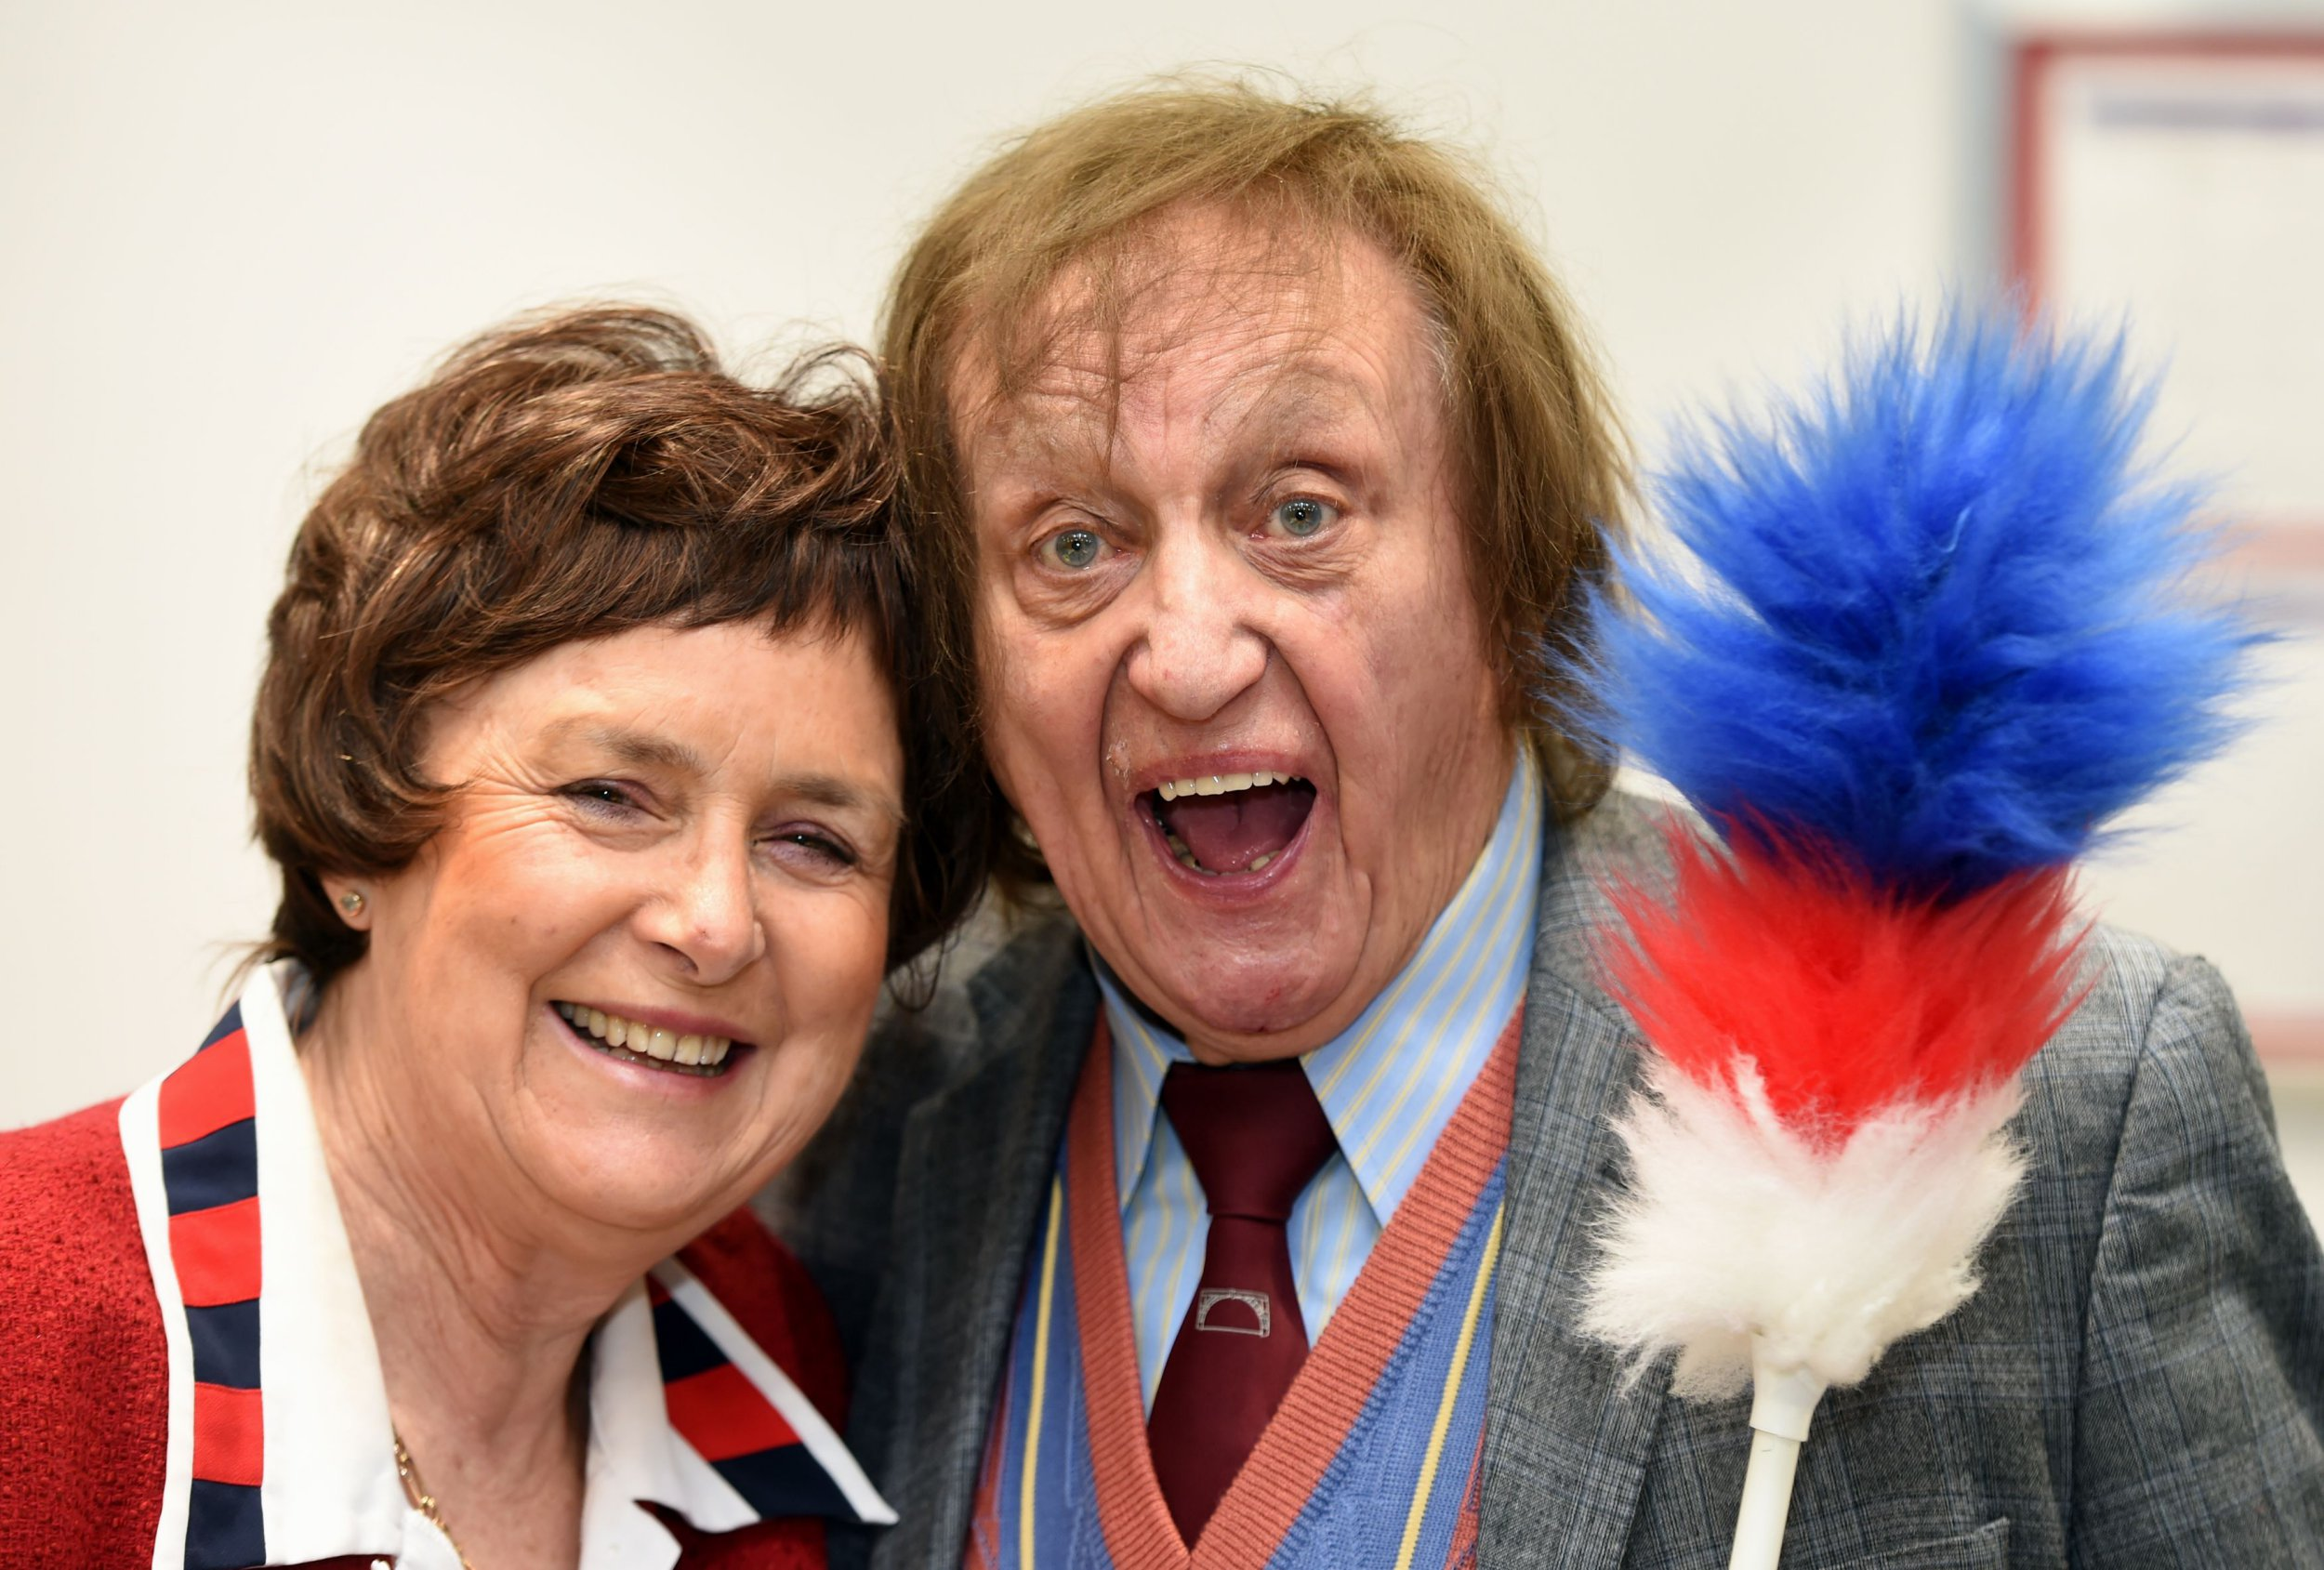 Ken Dodd gets the last laugh as he beats tax man by marrying partner two days before death